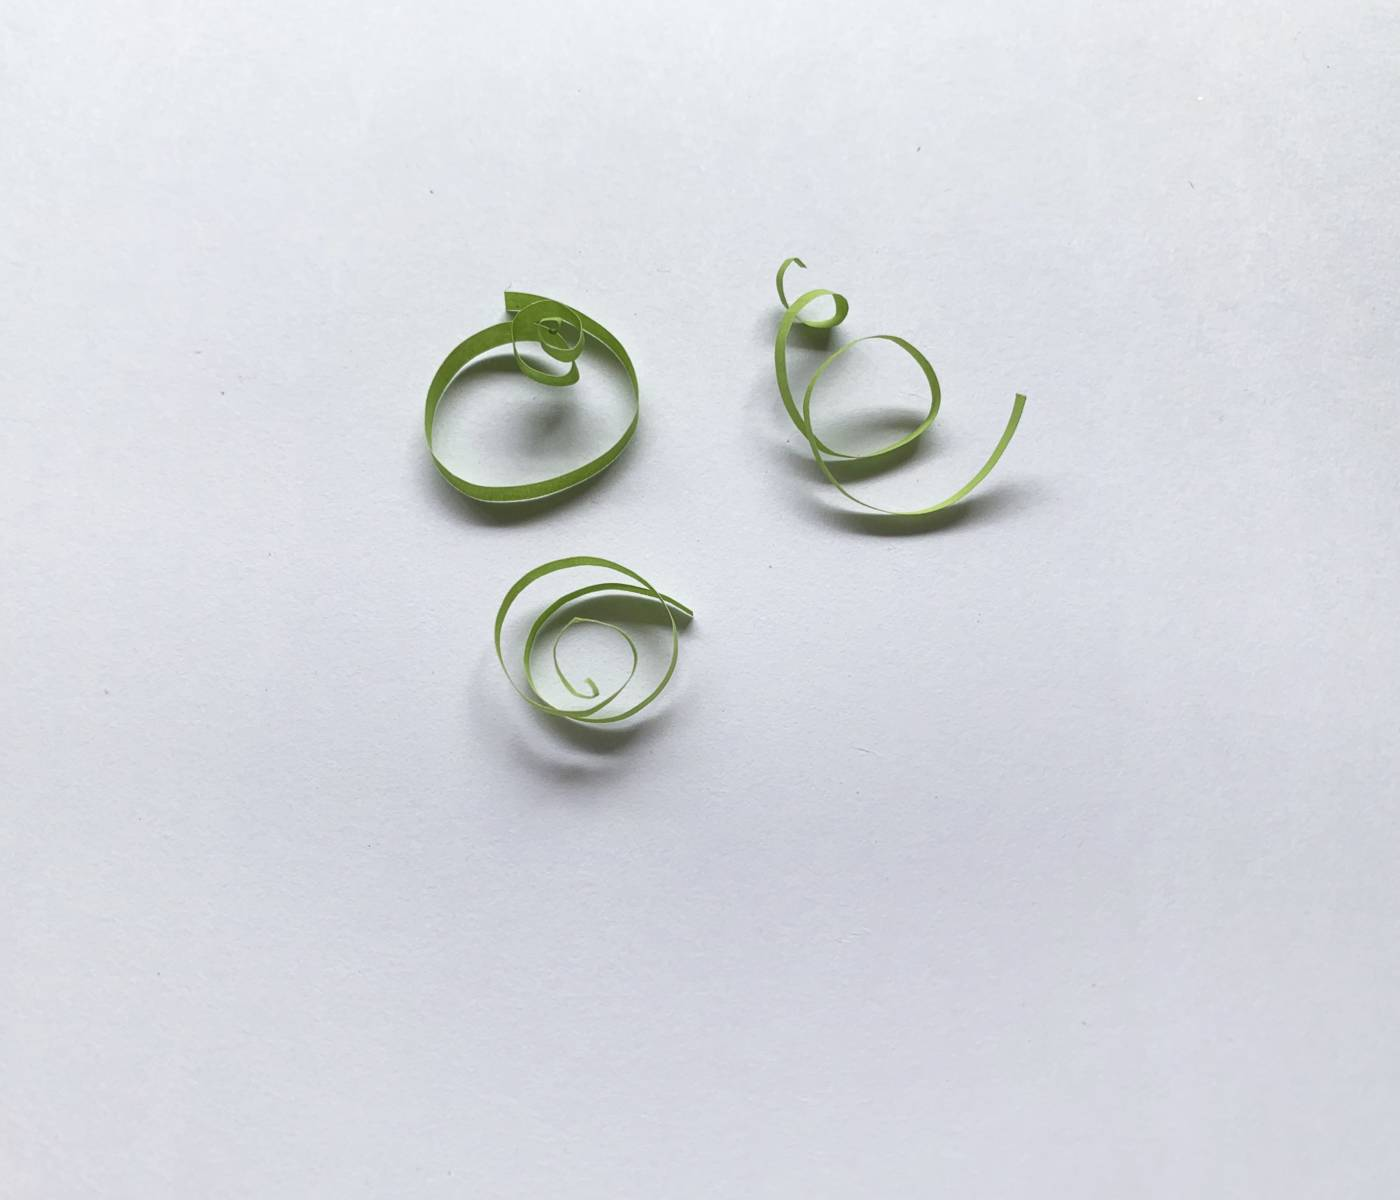 3 green strips of paper shaped like a swirl scattered around